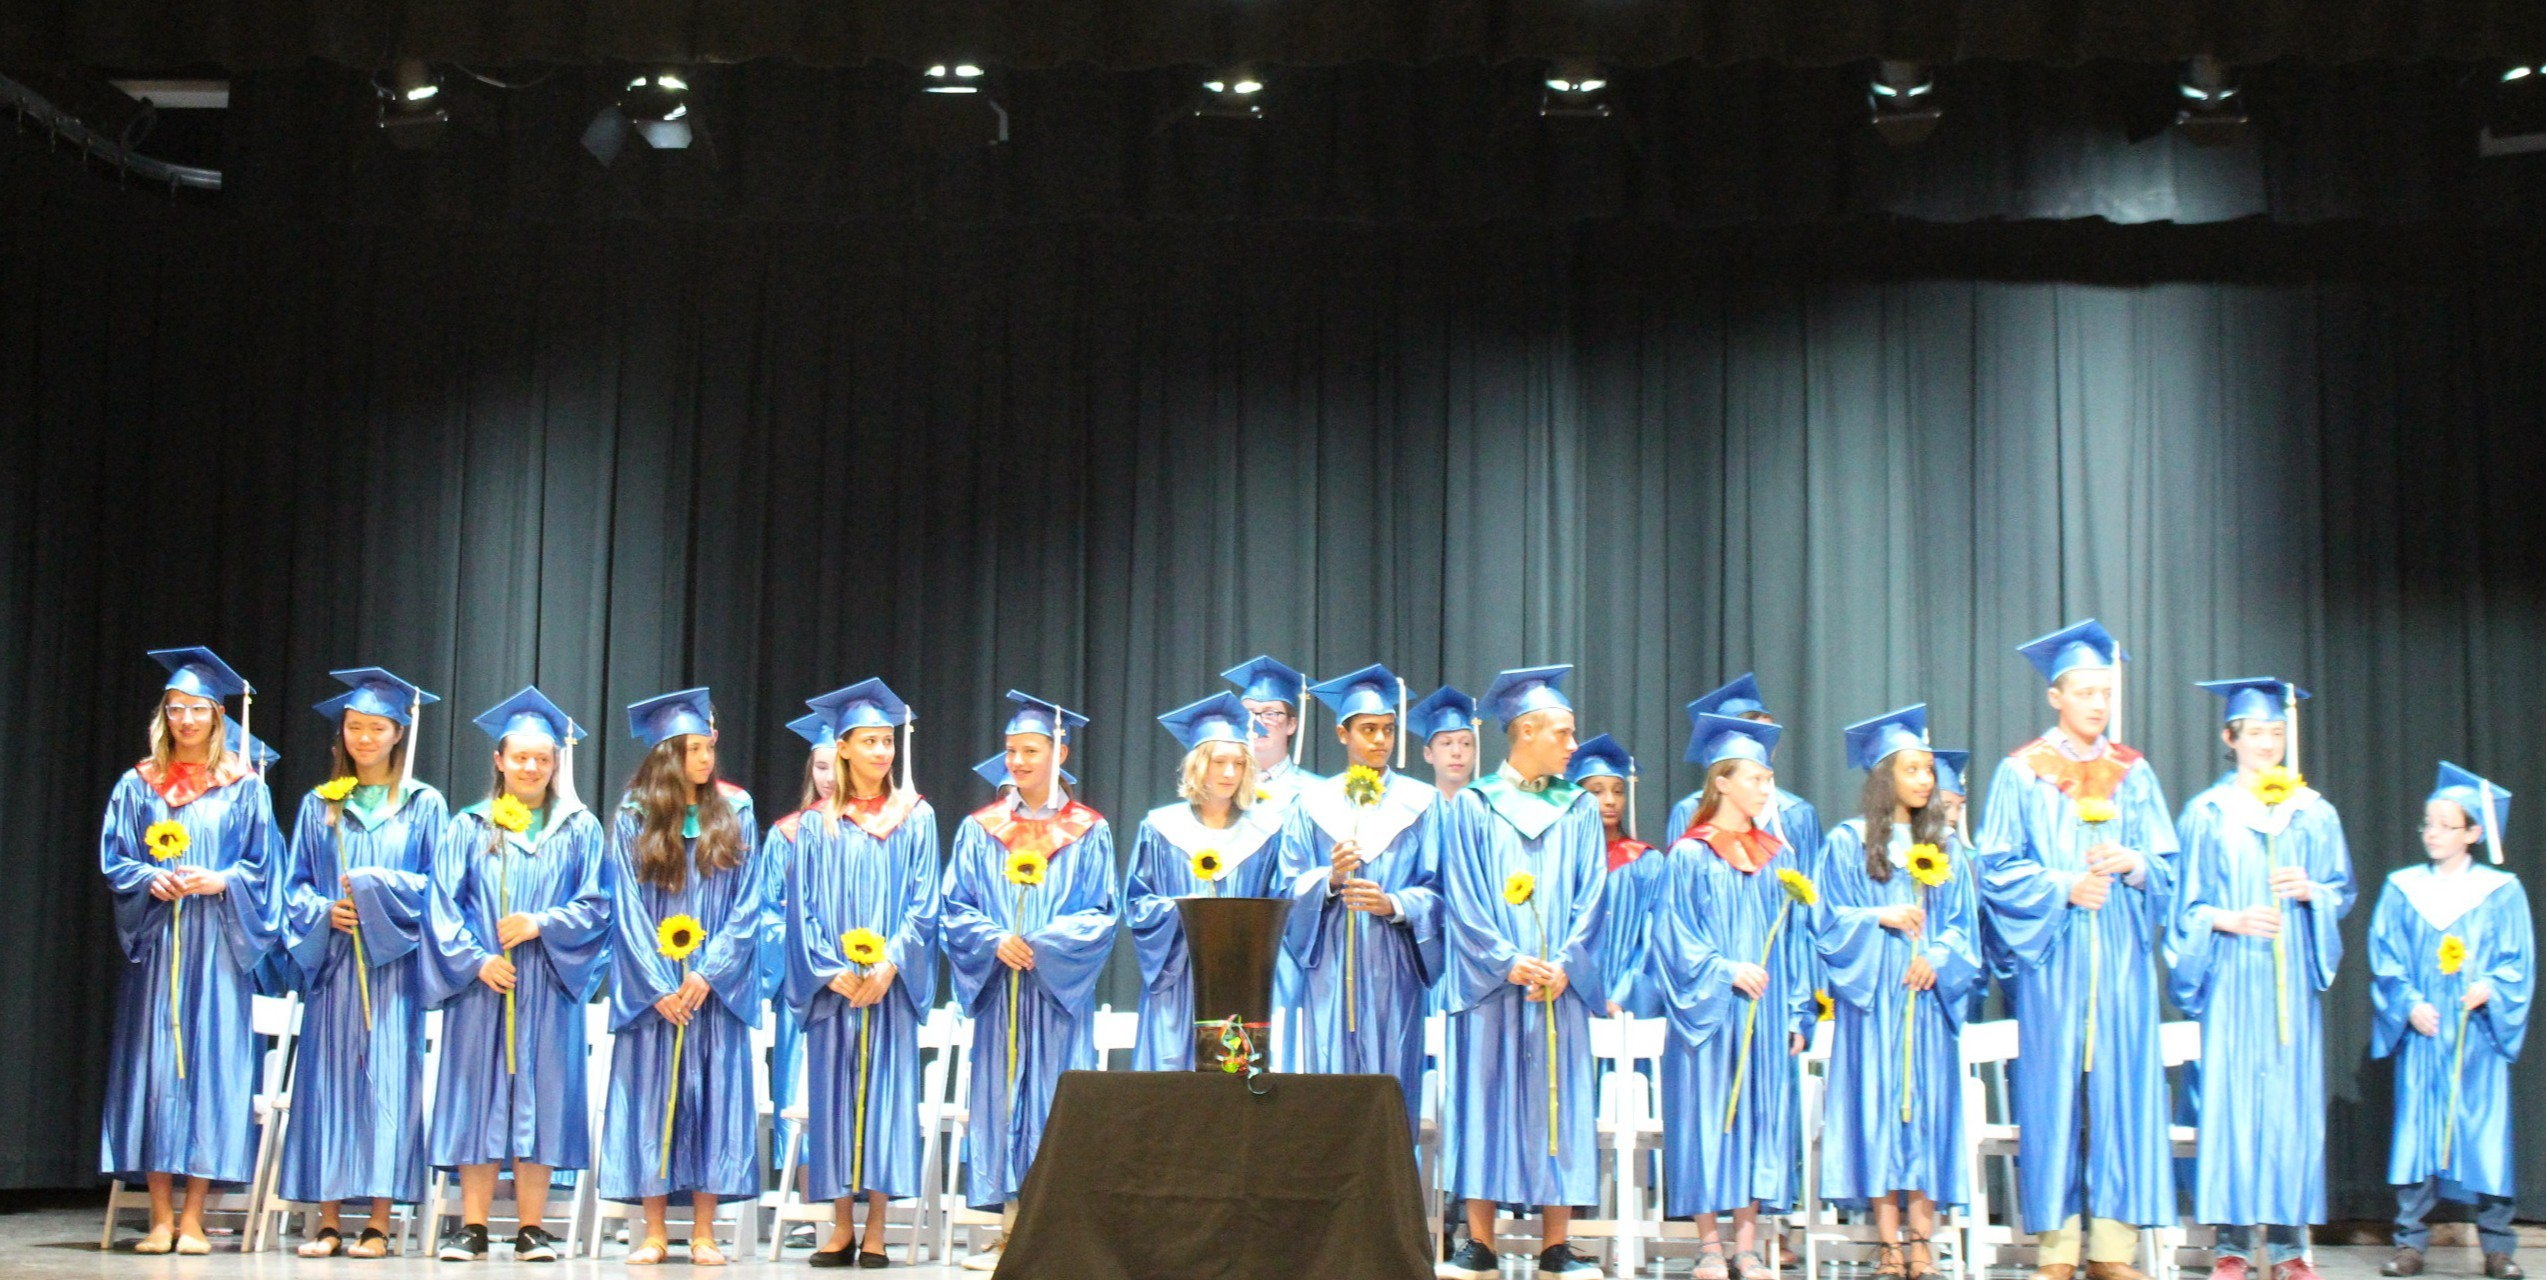 8th Graders Graduate and are Awarded With Words